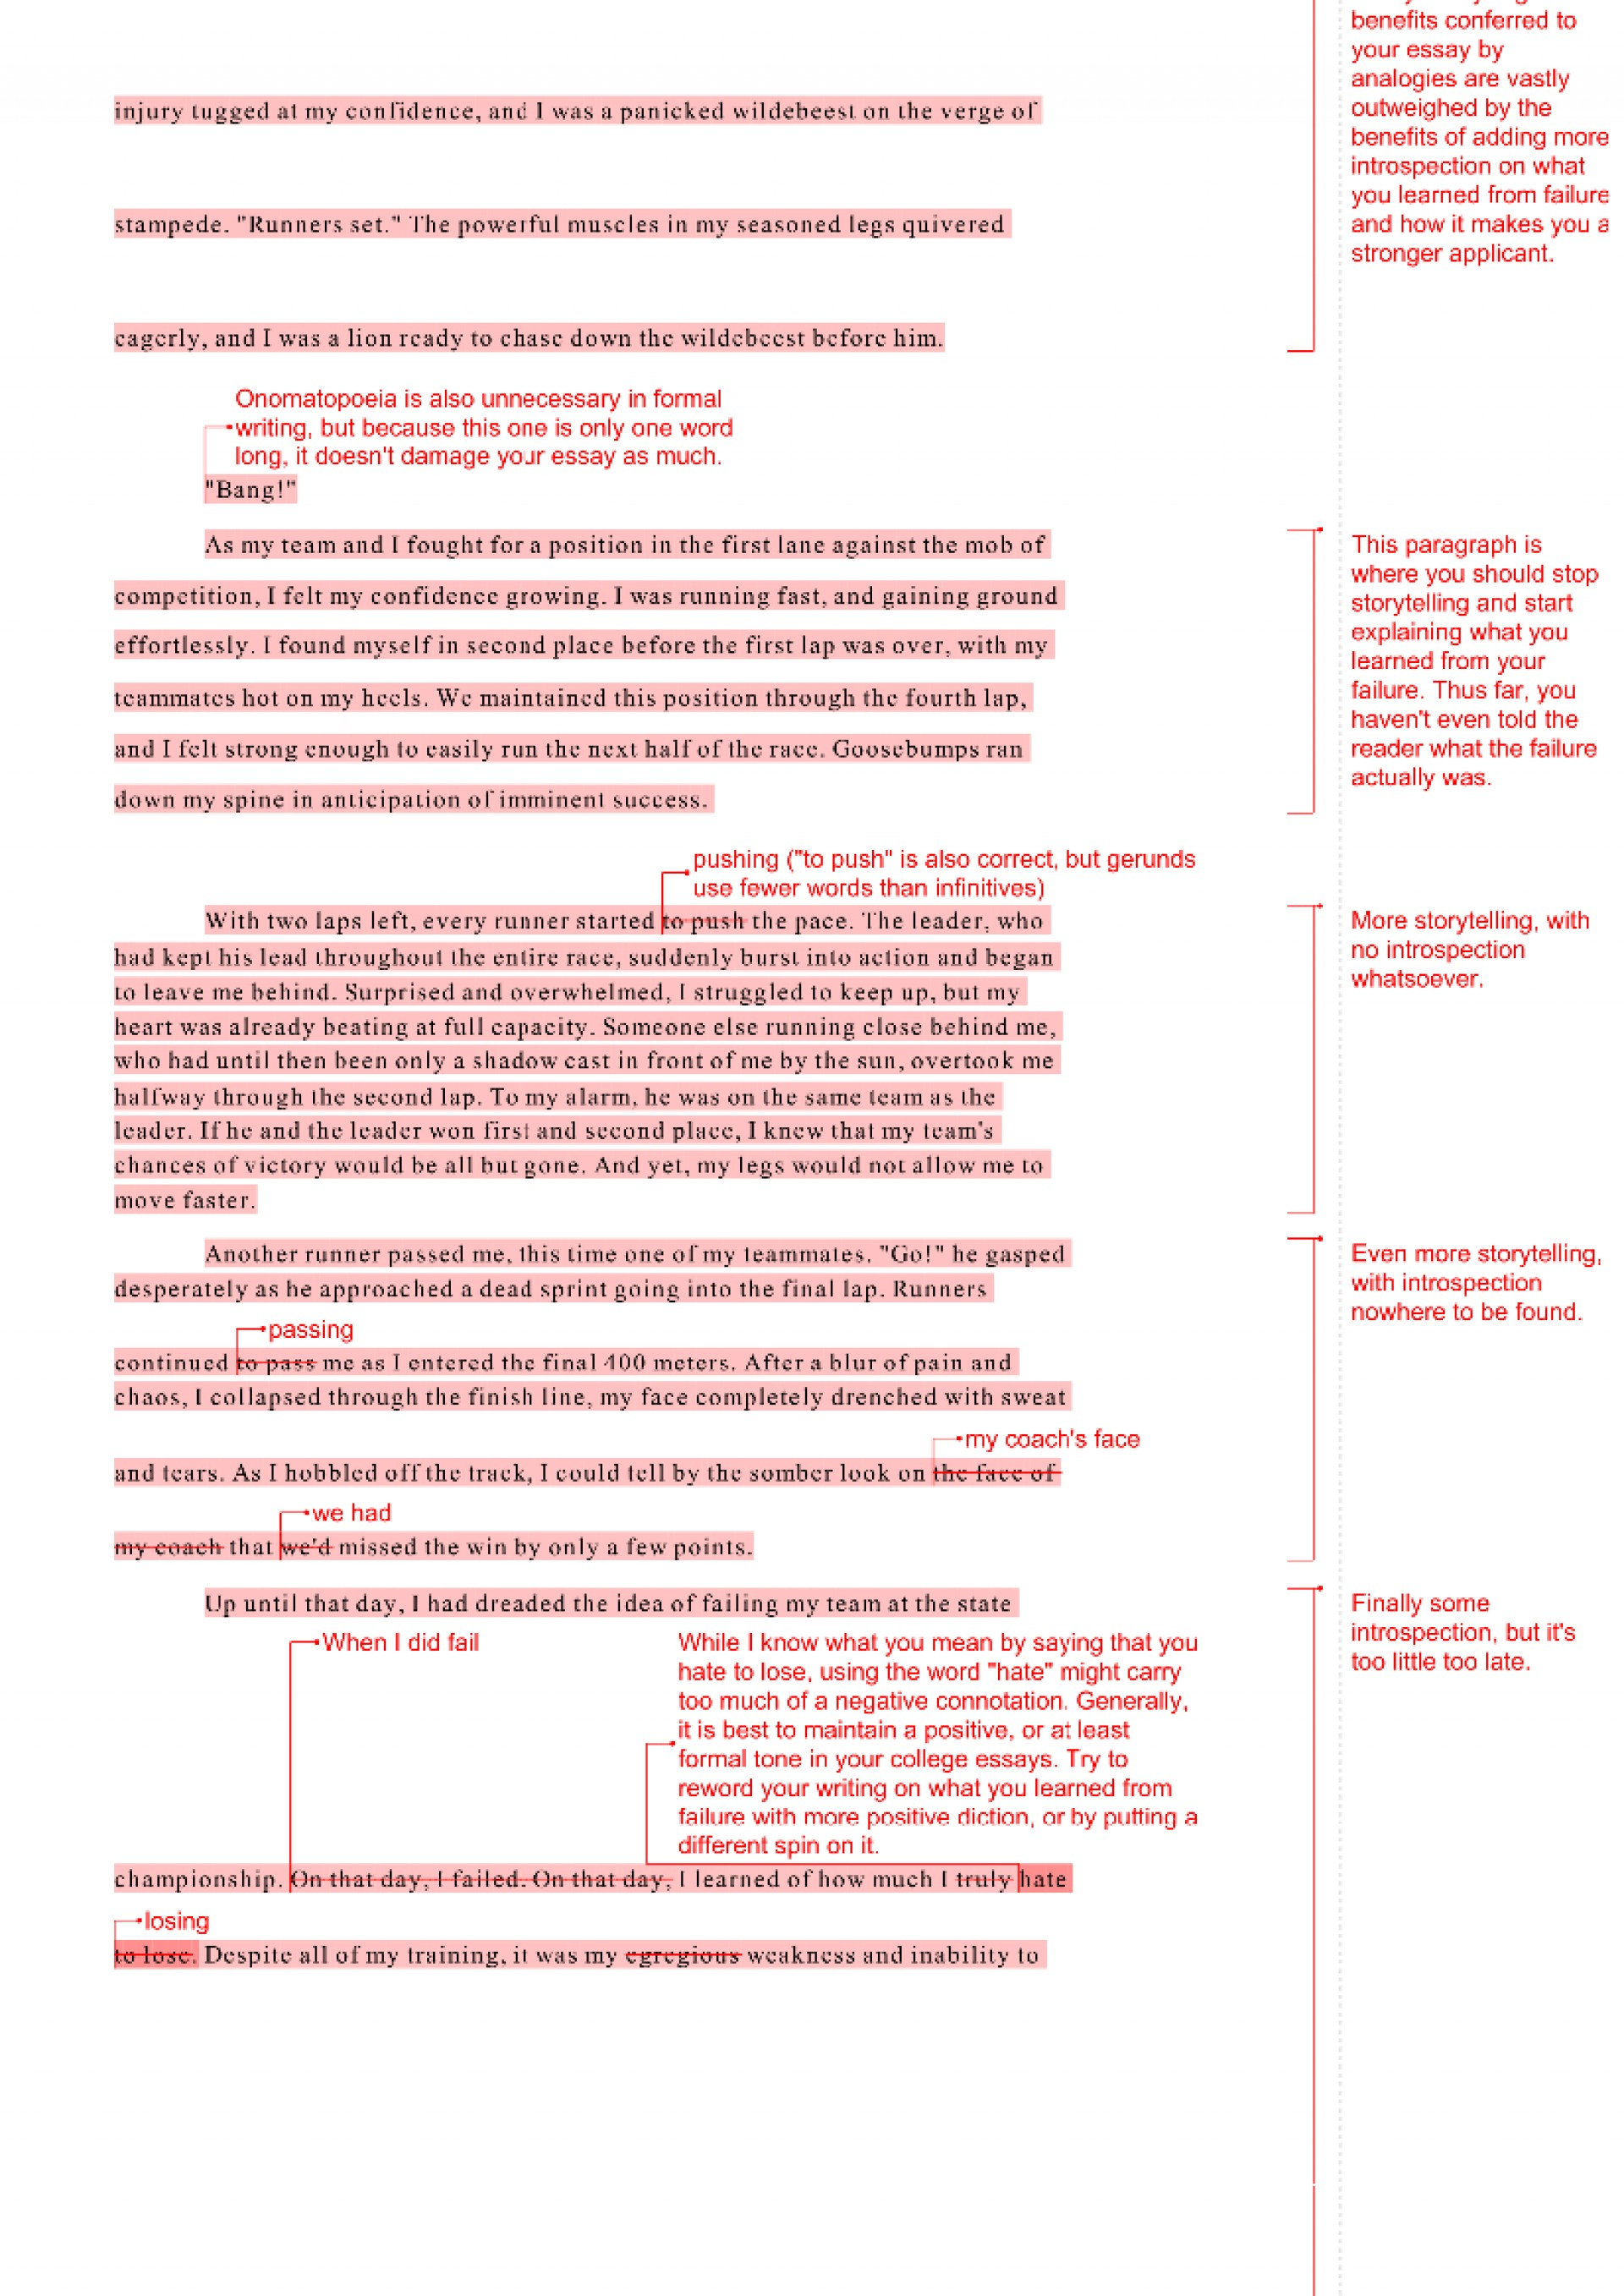 002 Essay Example Revise My Professor Quality Writing Feedback On Student Revision Examp Archaicawful Application How To Persuasive 1920